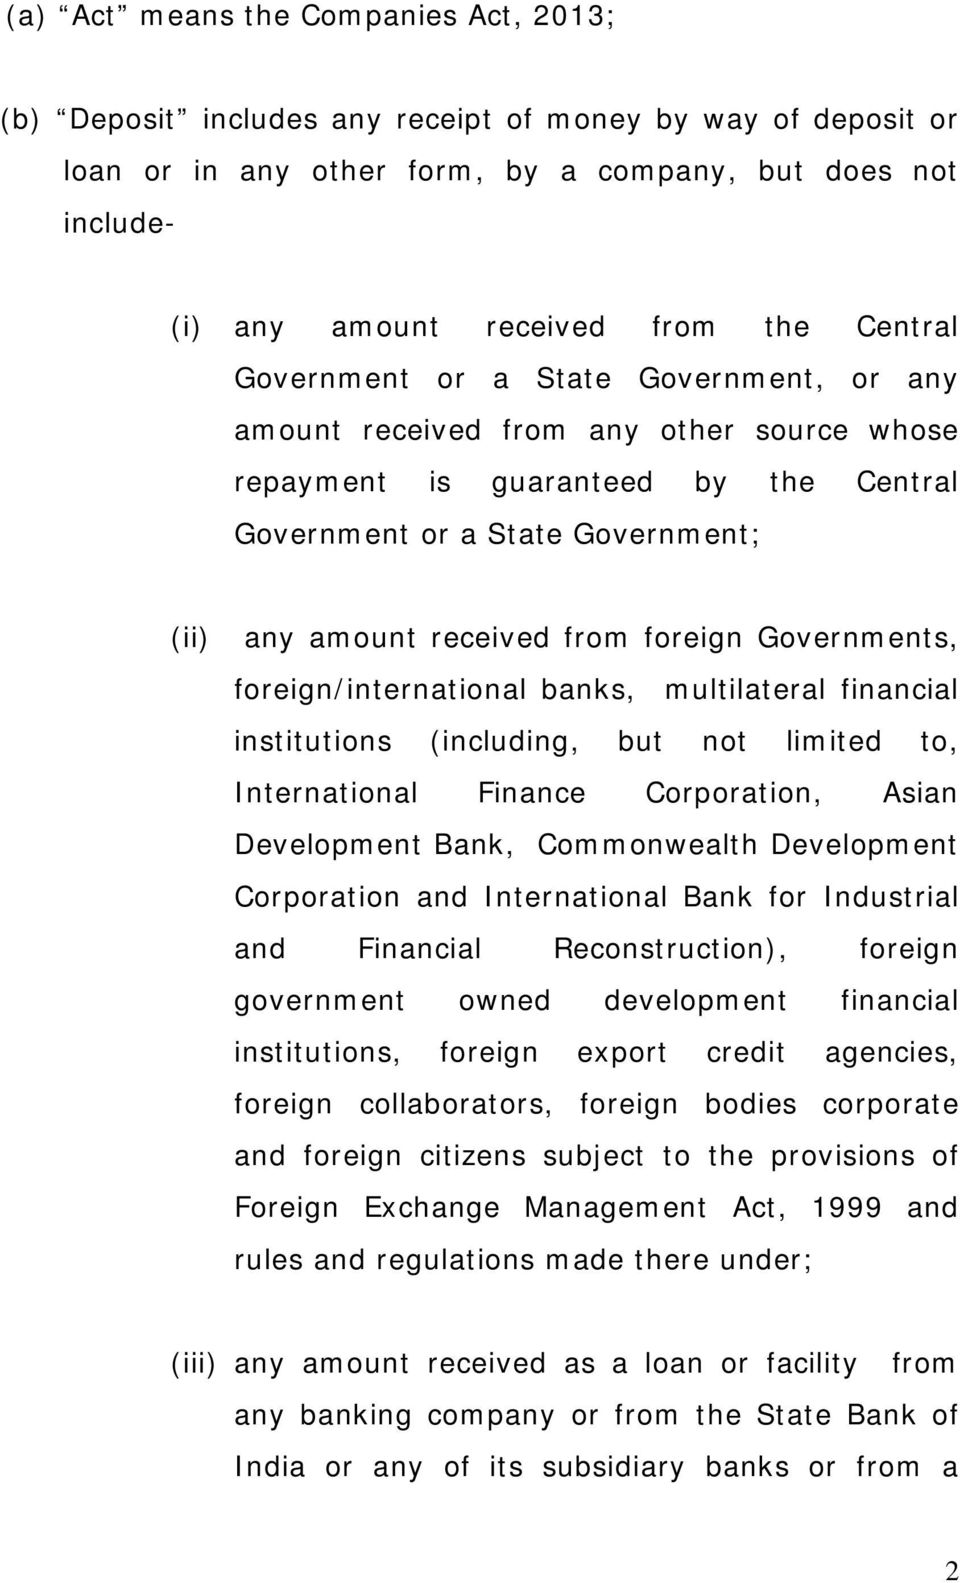 foreign Governments, foreign/international banks, multilateral financial institutions (including, but not limited to, International Finance Corporation, Asian Development Bank, Commonwealth